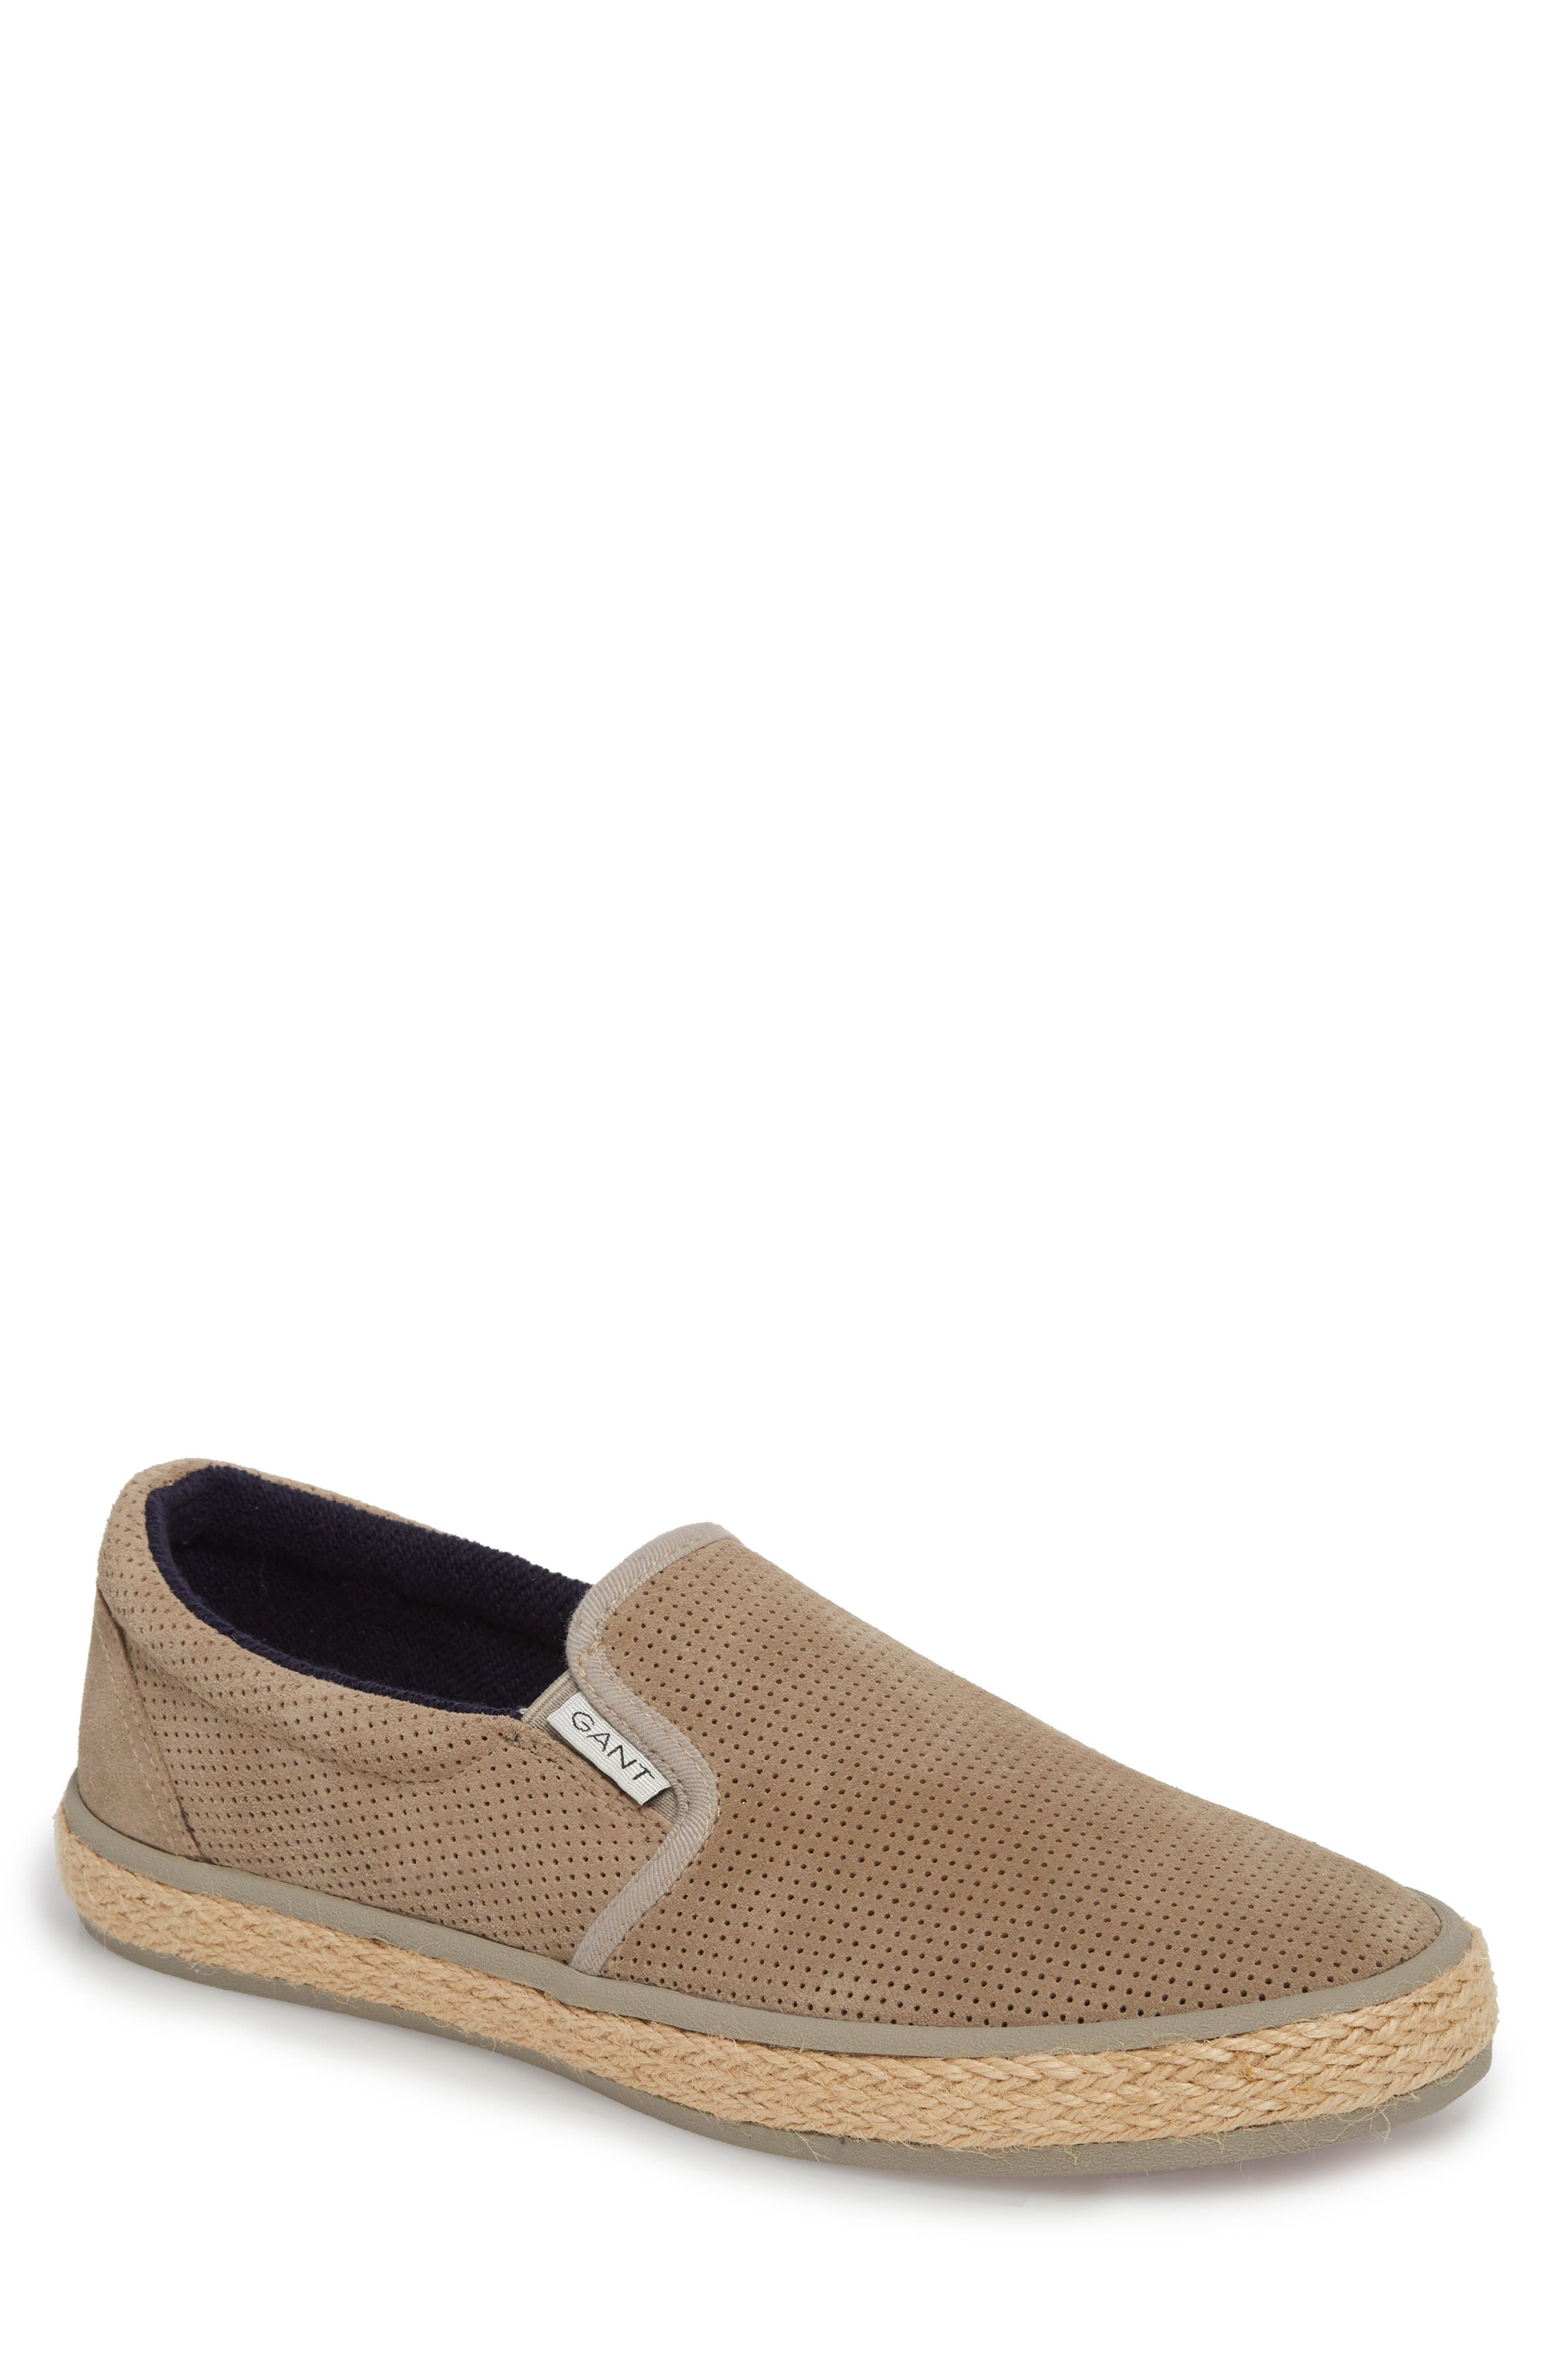 Master Perforated Slip-On Sneaker,                         Main,                         color, 209